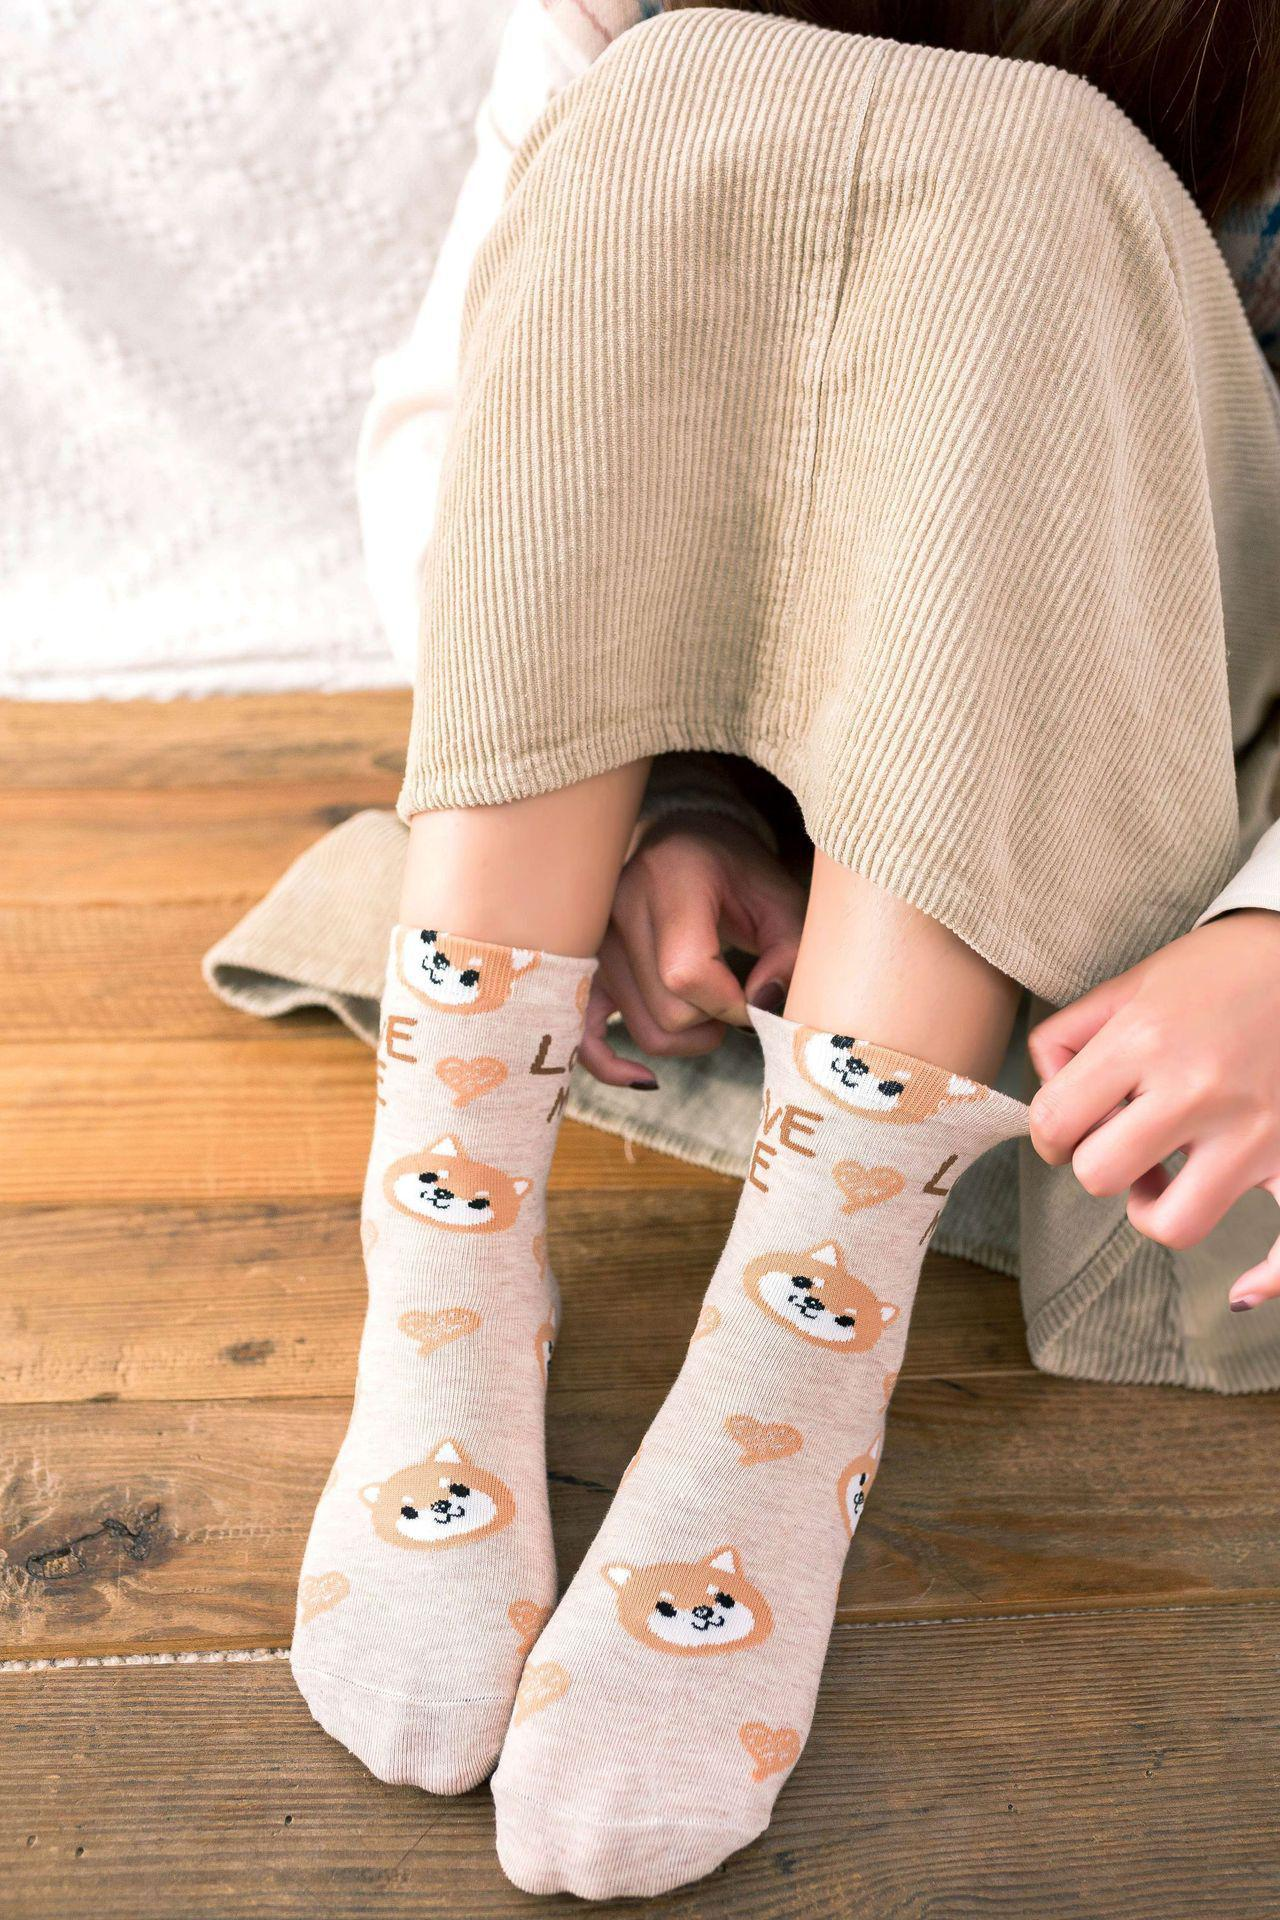 KAWAII CARTOON LOVE ME SOCKS-Cosmique Studio-Aesthetic-Outfits